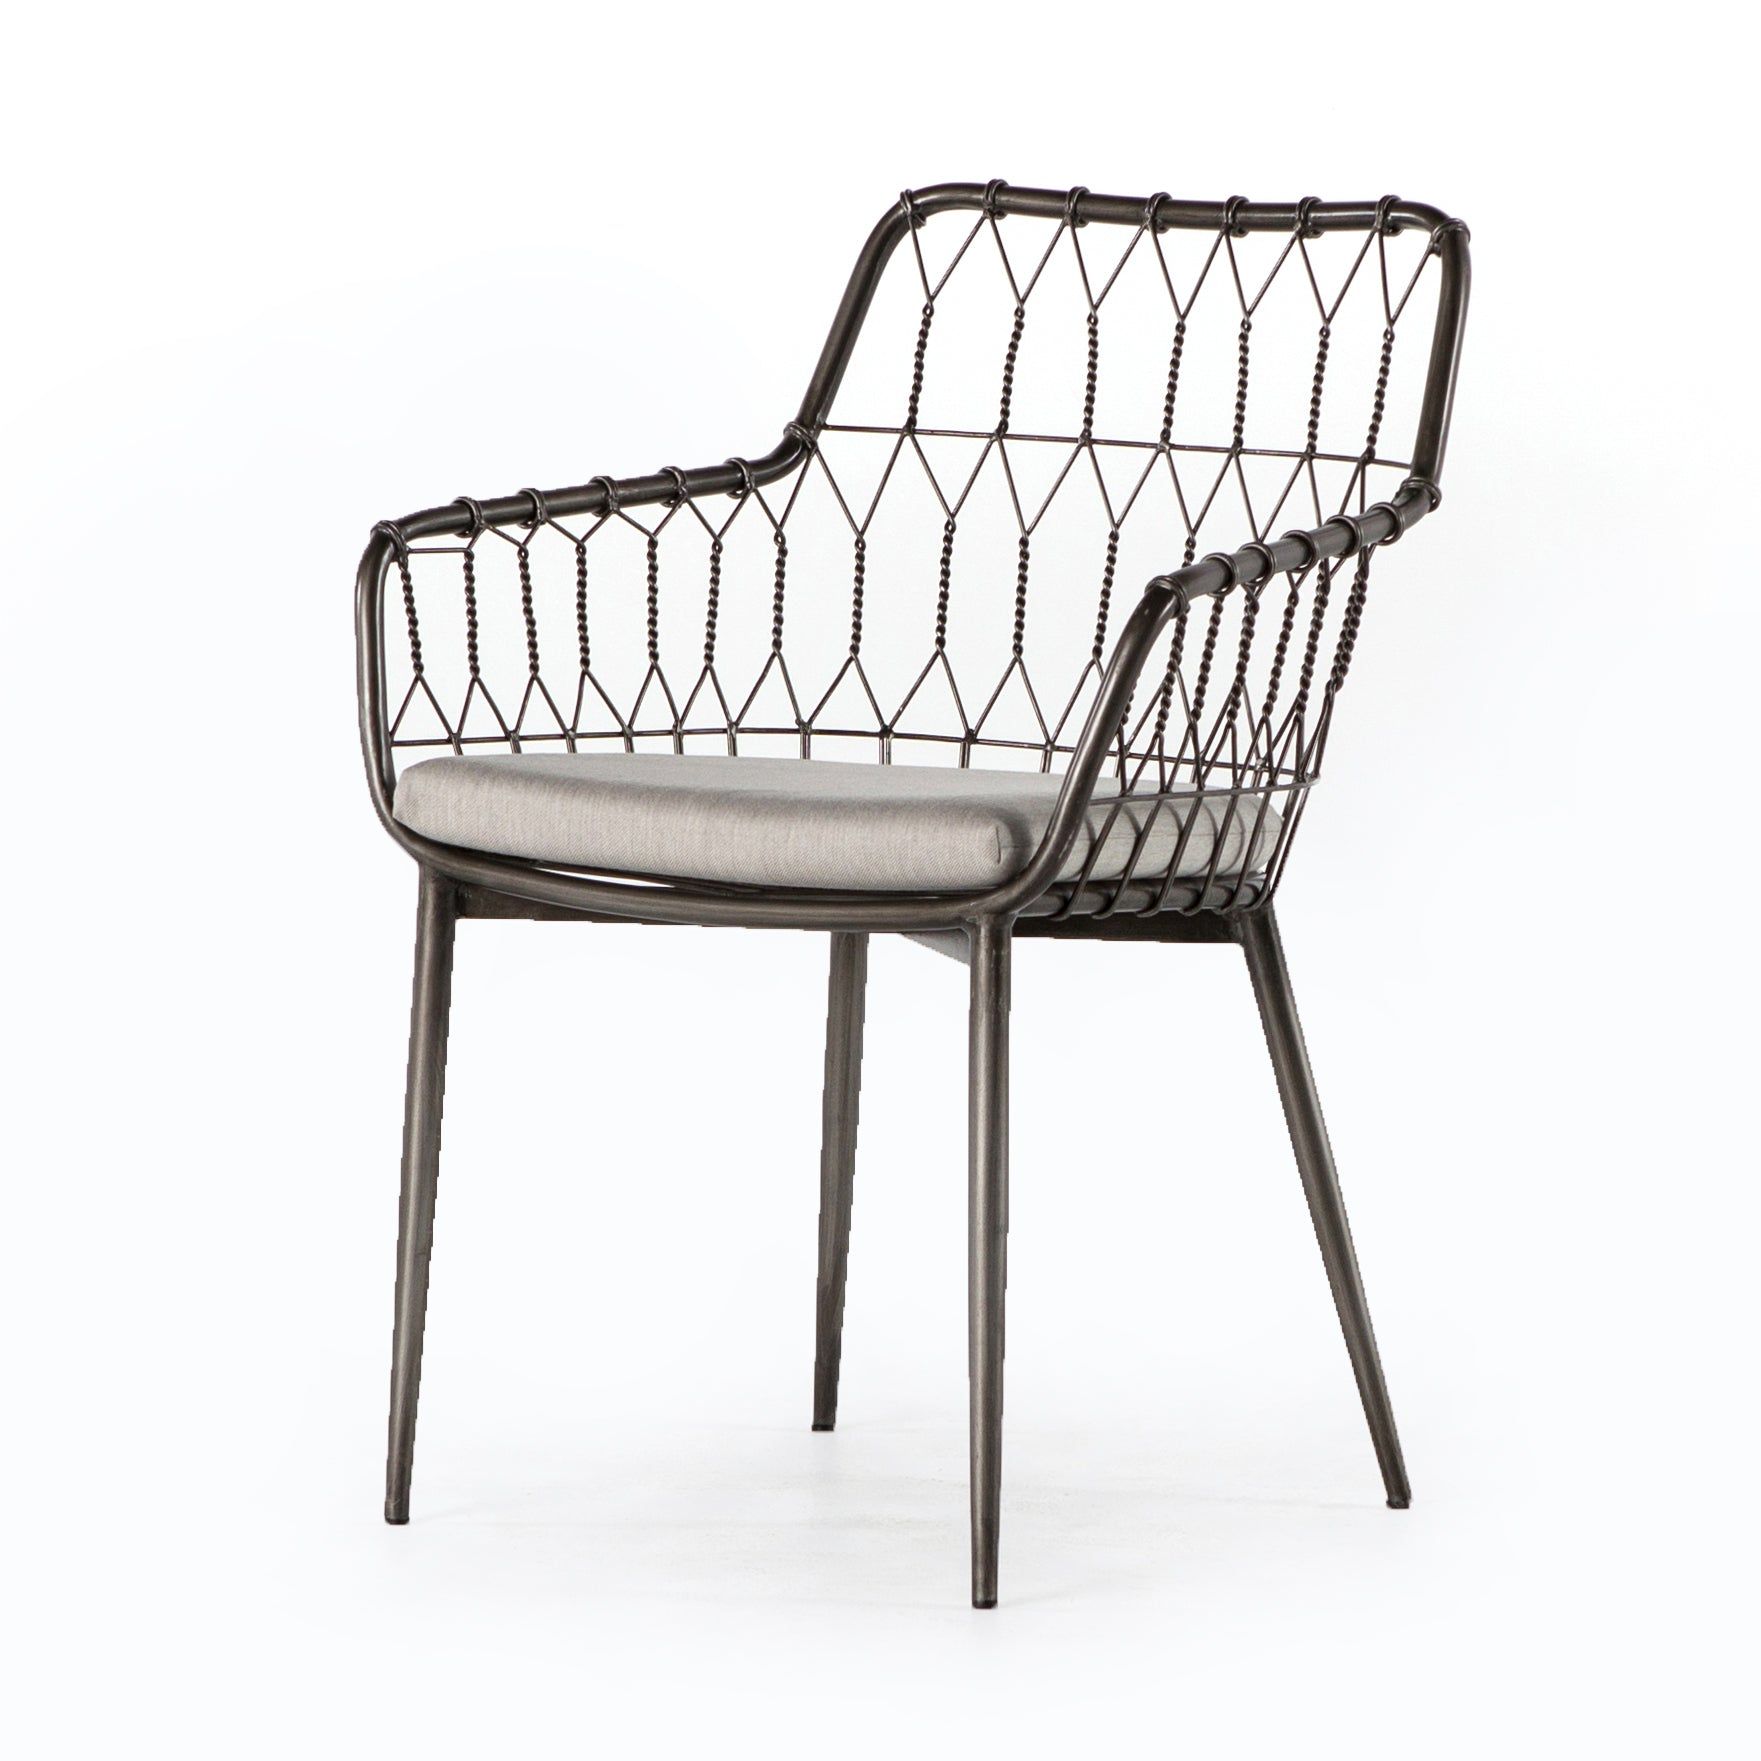 Kade Outdoor Dining Chair - Silver River